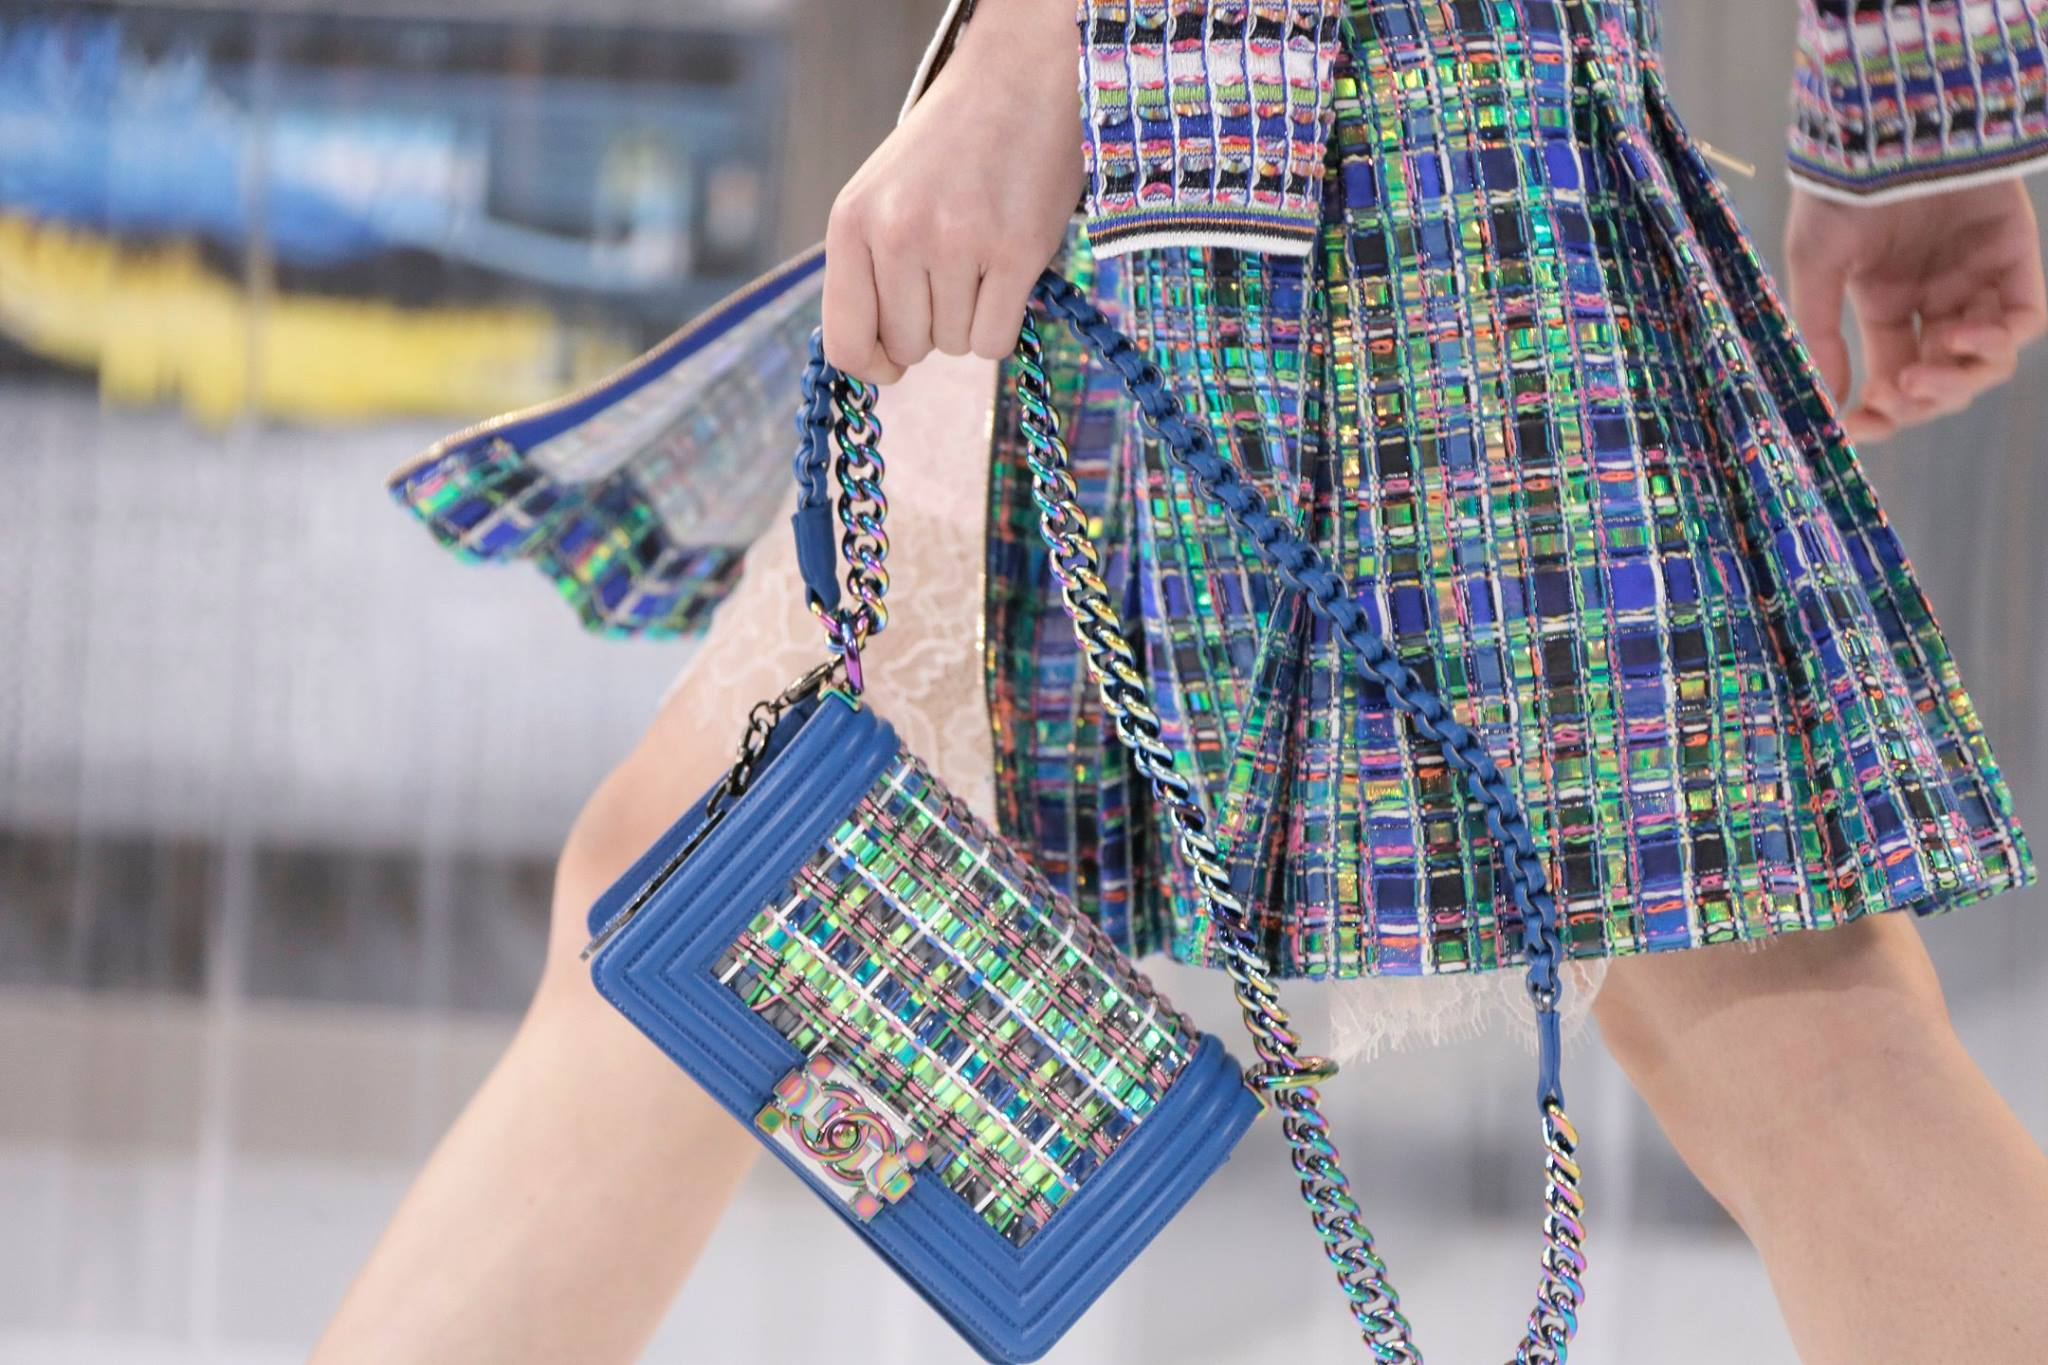 Best Chanel Handbags Trending on Social Media